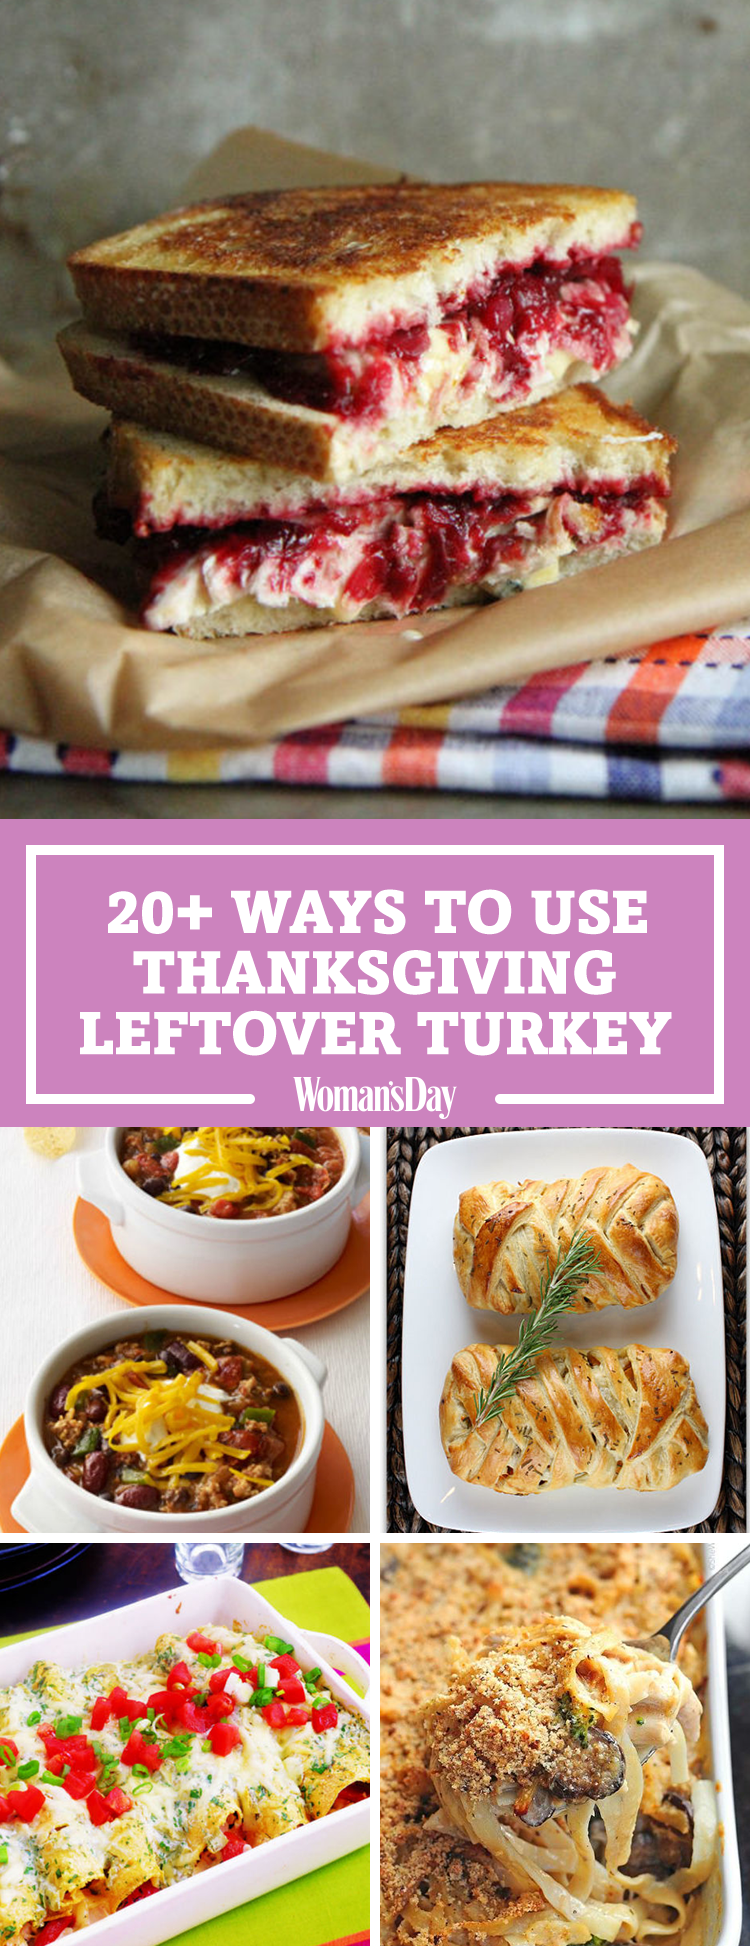 23 easy leftover turkey recipes what to make with for Leftover thanksgiving turkey recipes